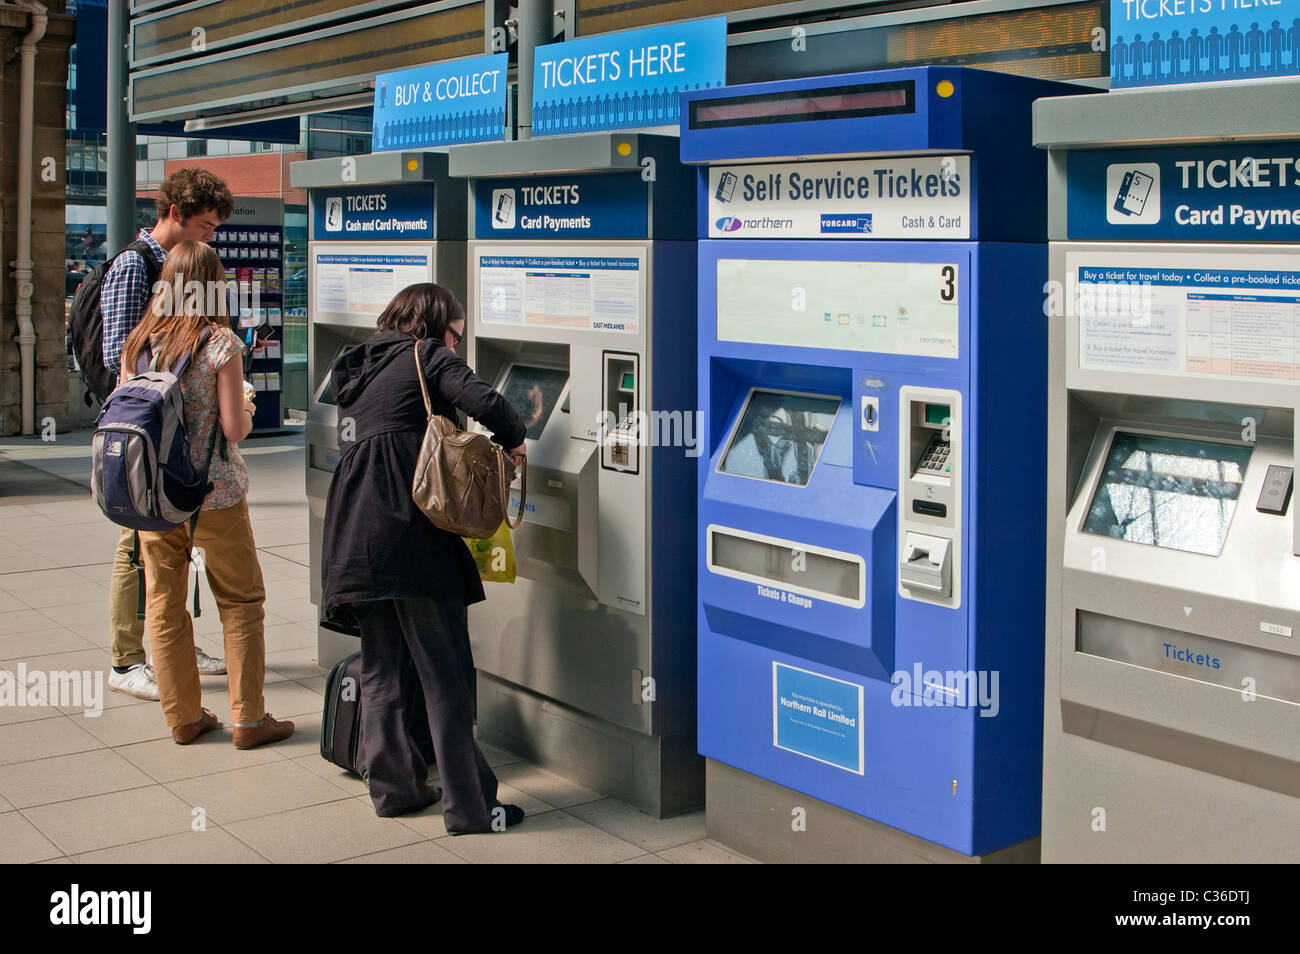 Collecting and buying tickets at railway station machines - Stock Image